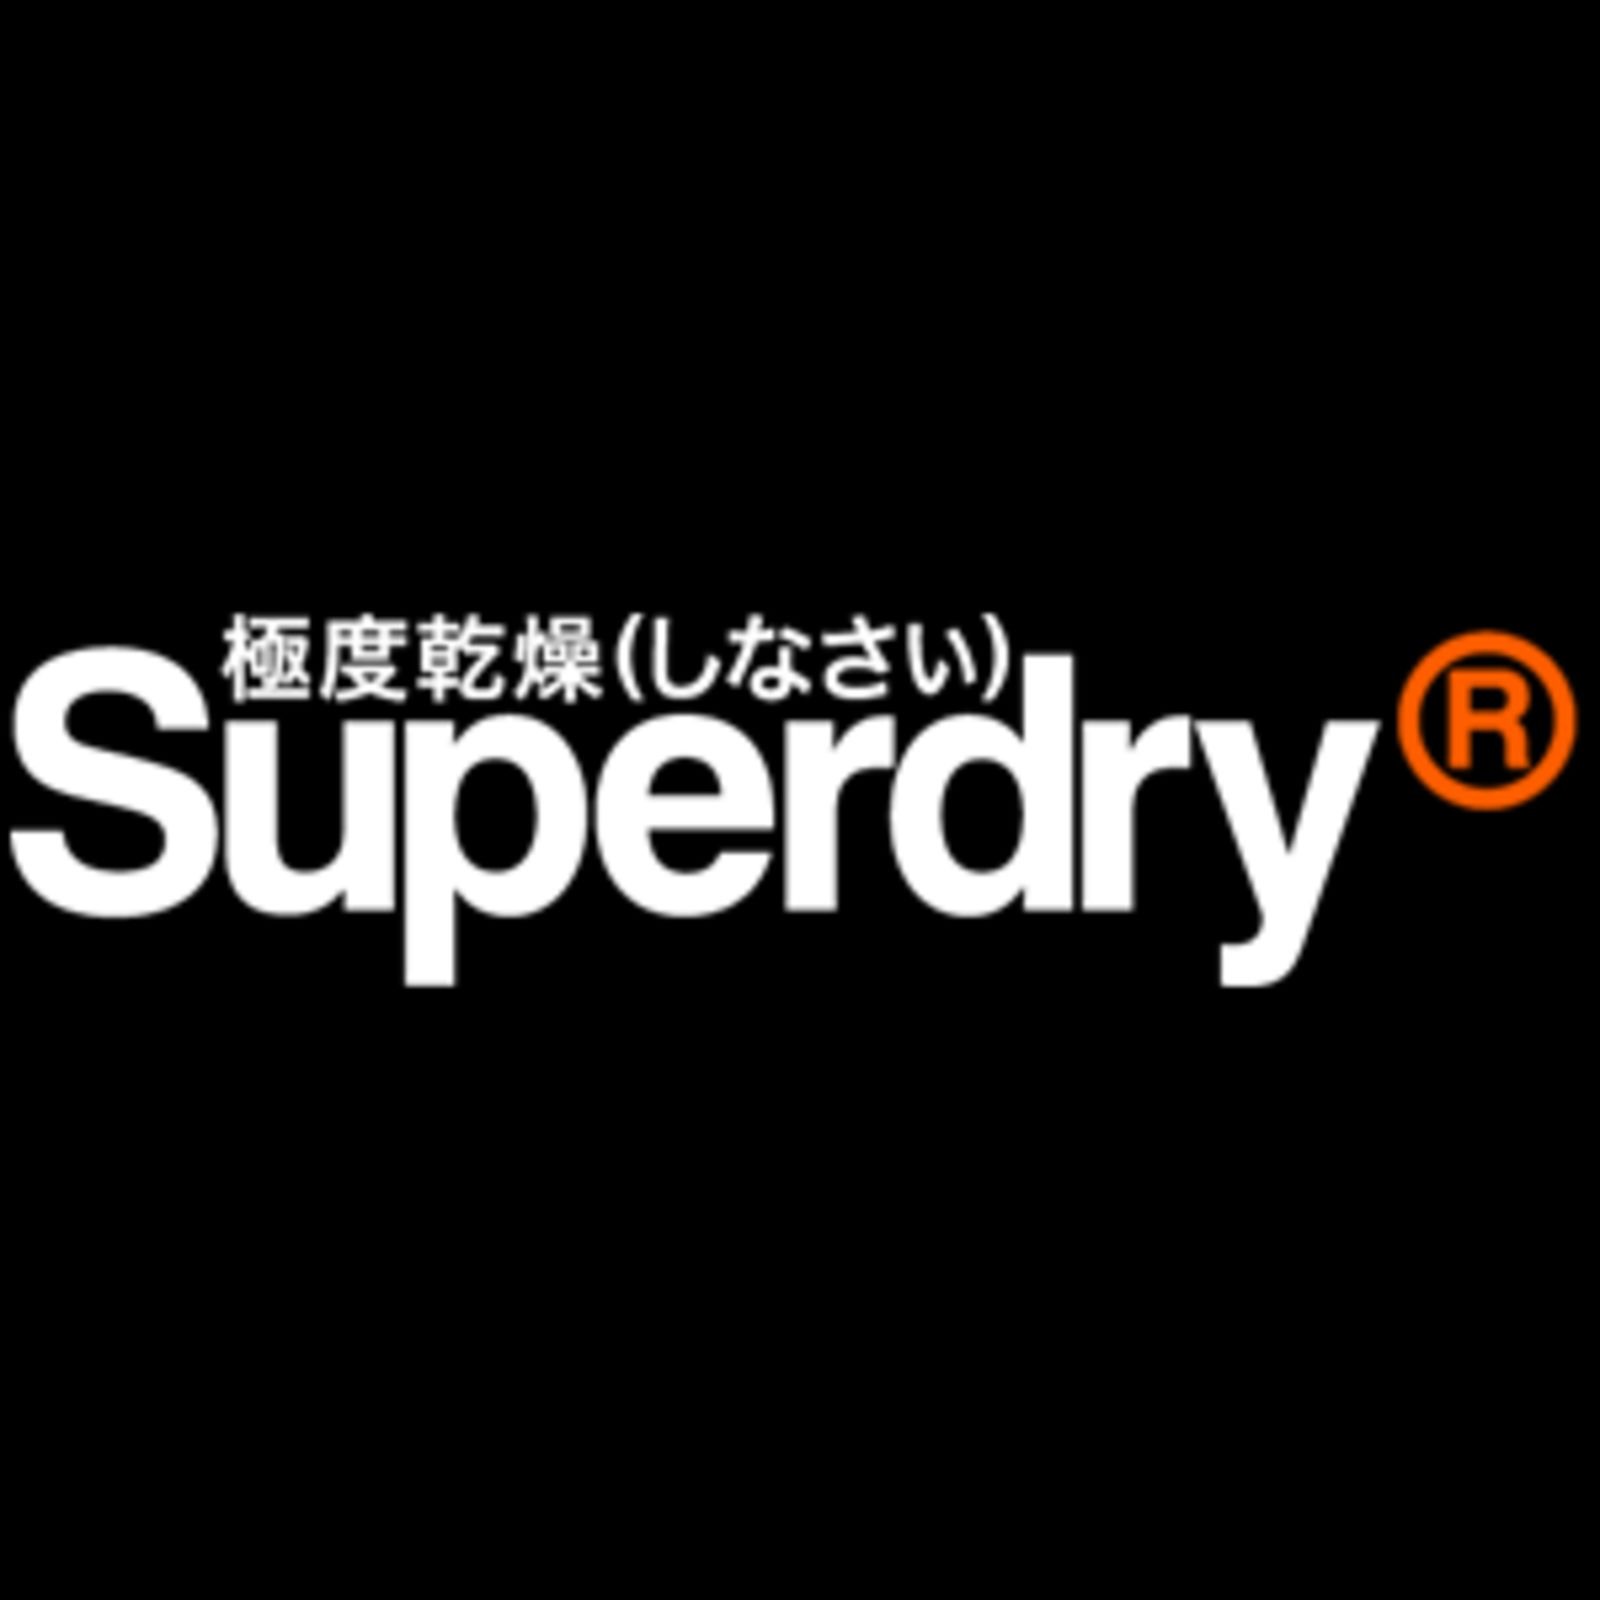 Superdry. (Image 1)